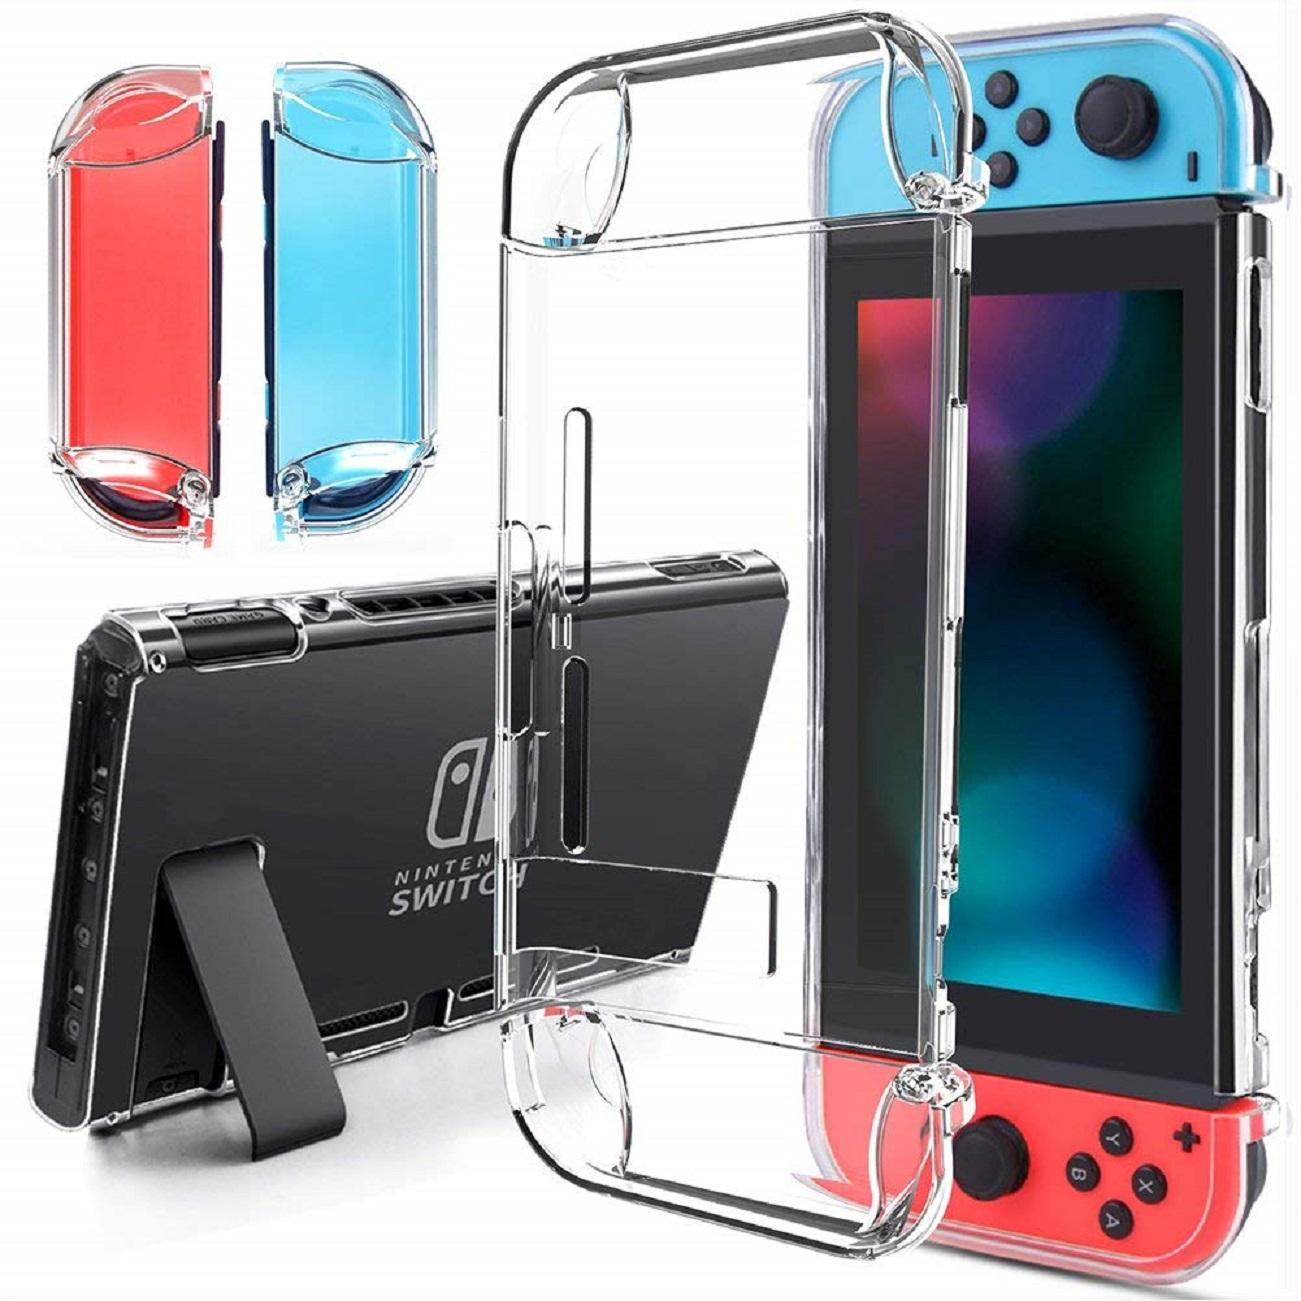 Latest Nintendo Gaming Accessories Products | Enjoy Huge Discounts